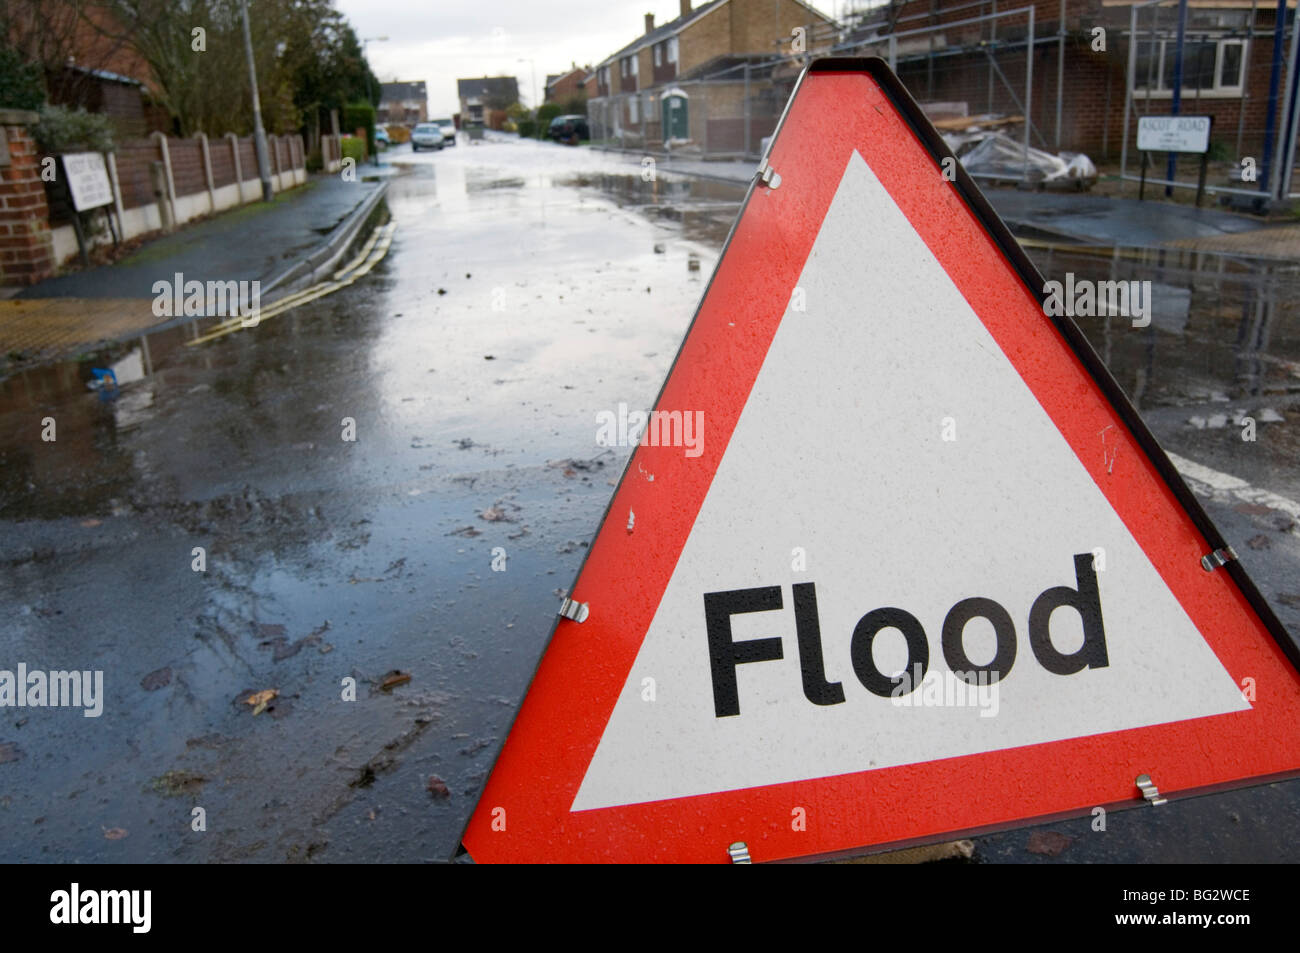 flood flooding flooded road roads heavy rain global warming blocked drain drains road sign signs water waters climate - Stock Image